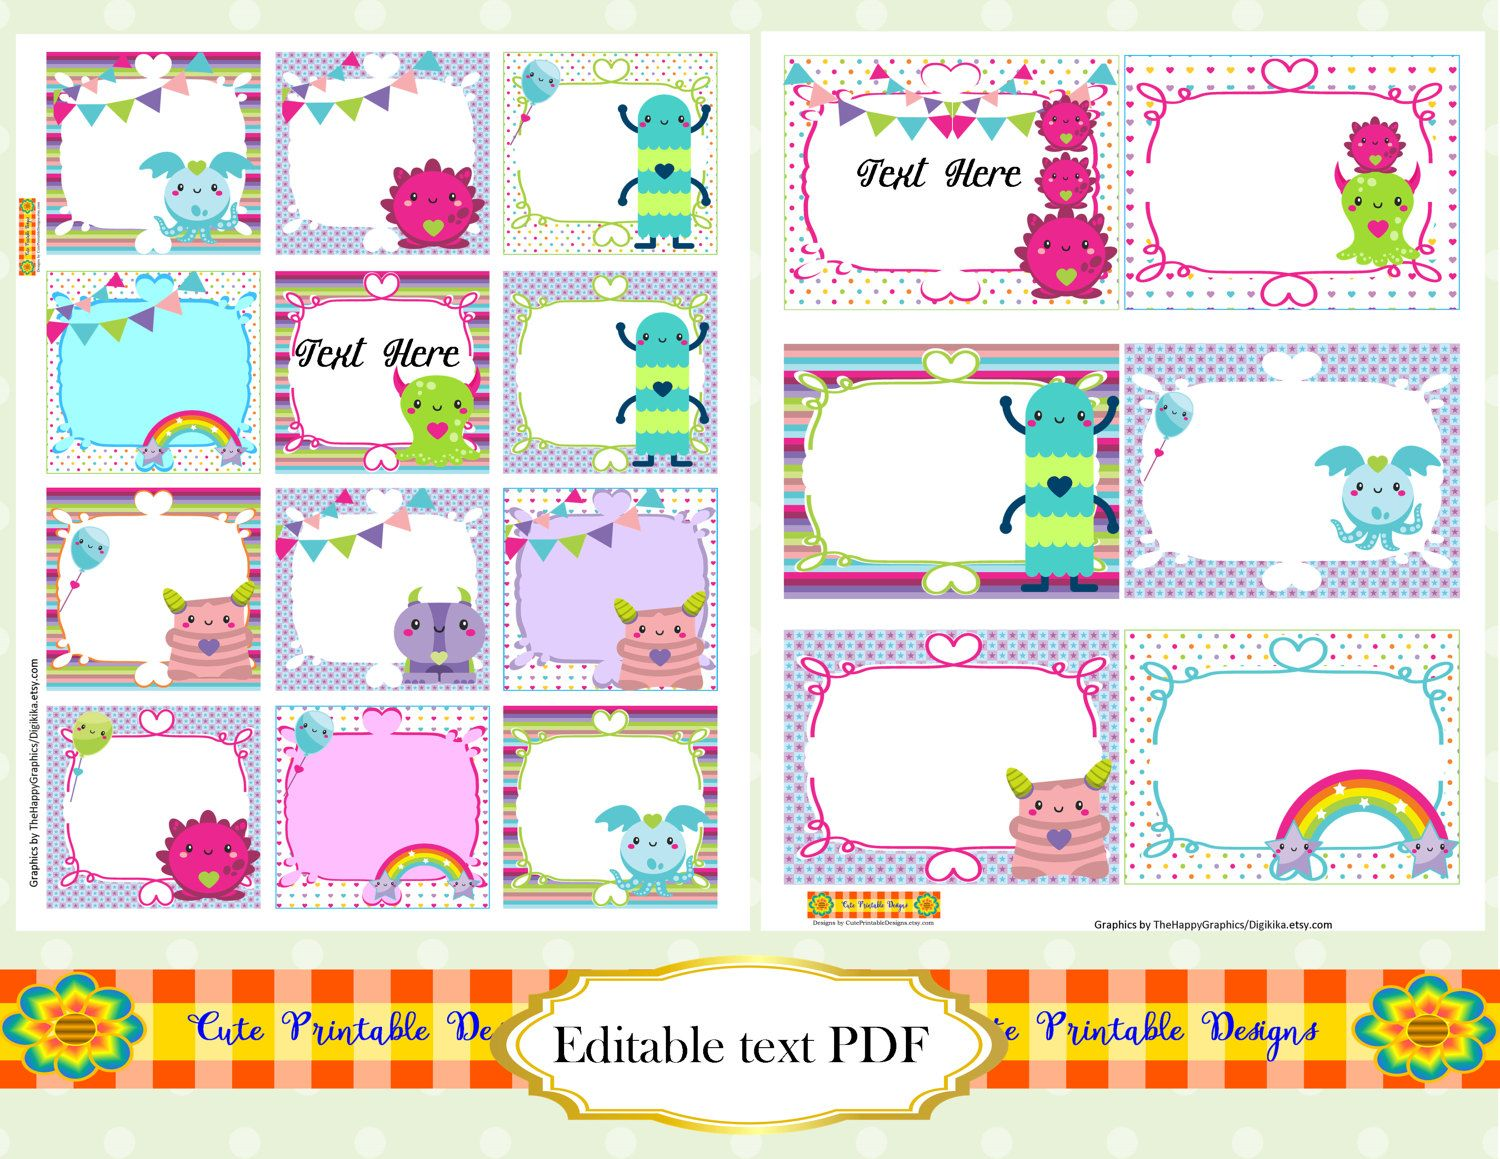 Printable Note Cards Lunch Box Notes Editable Square Labels School Labels Printable